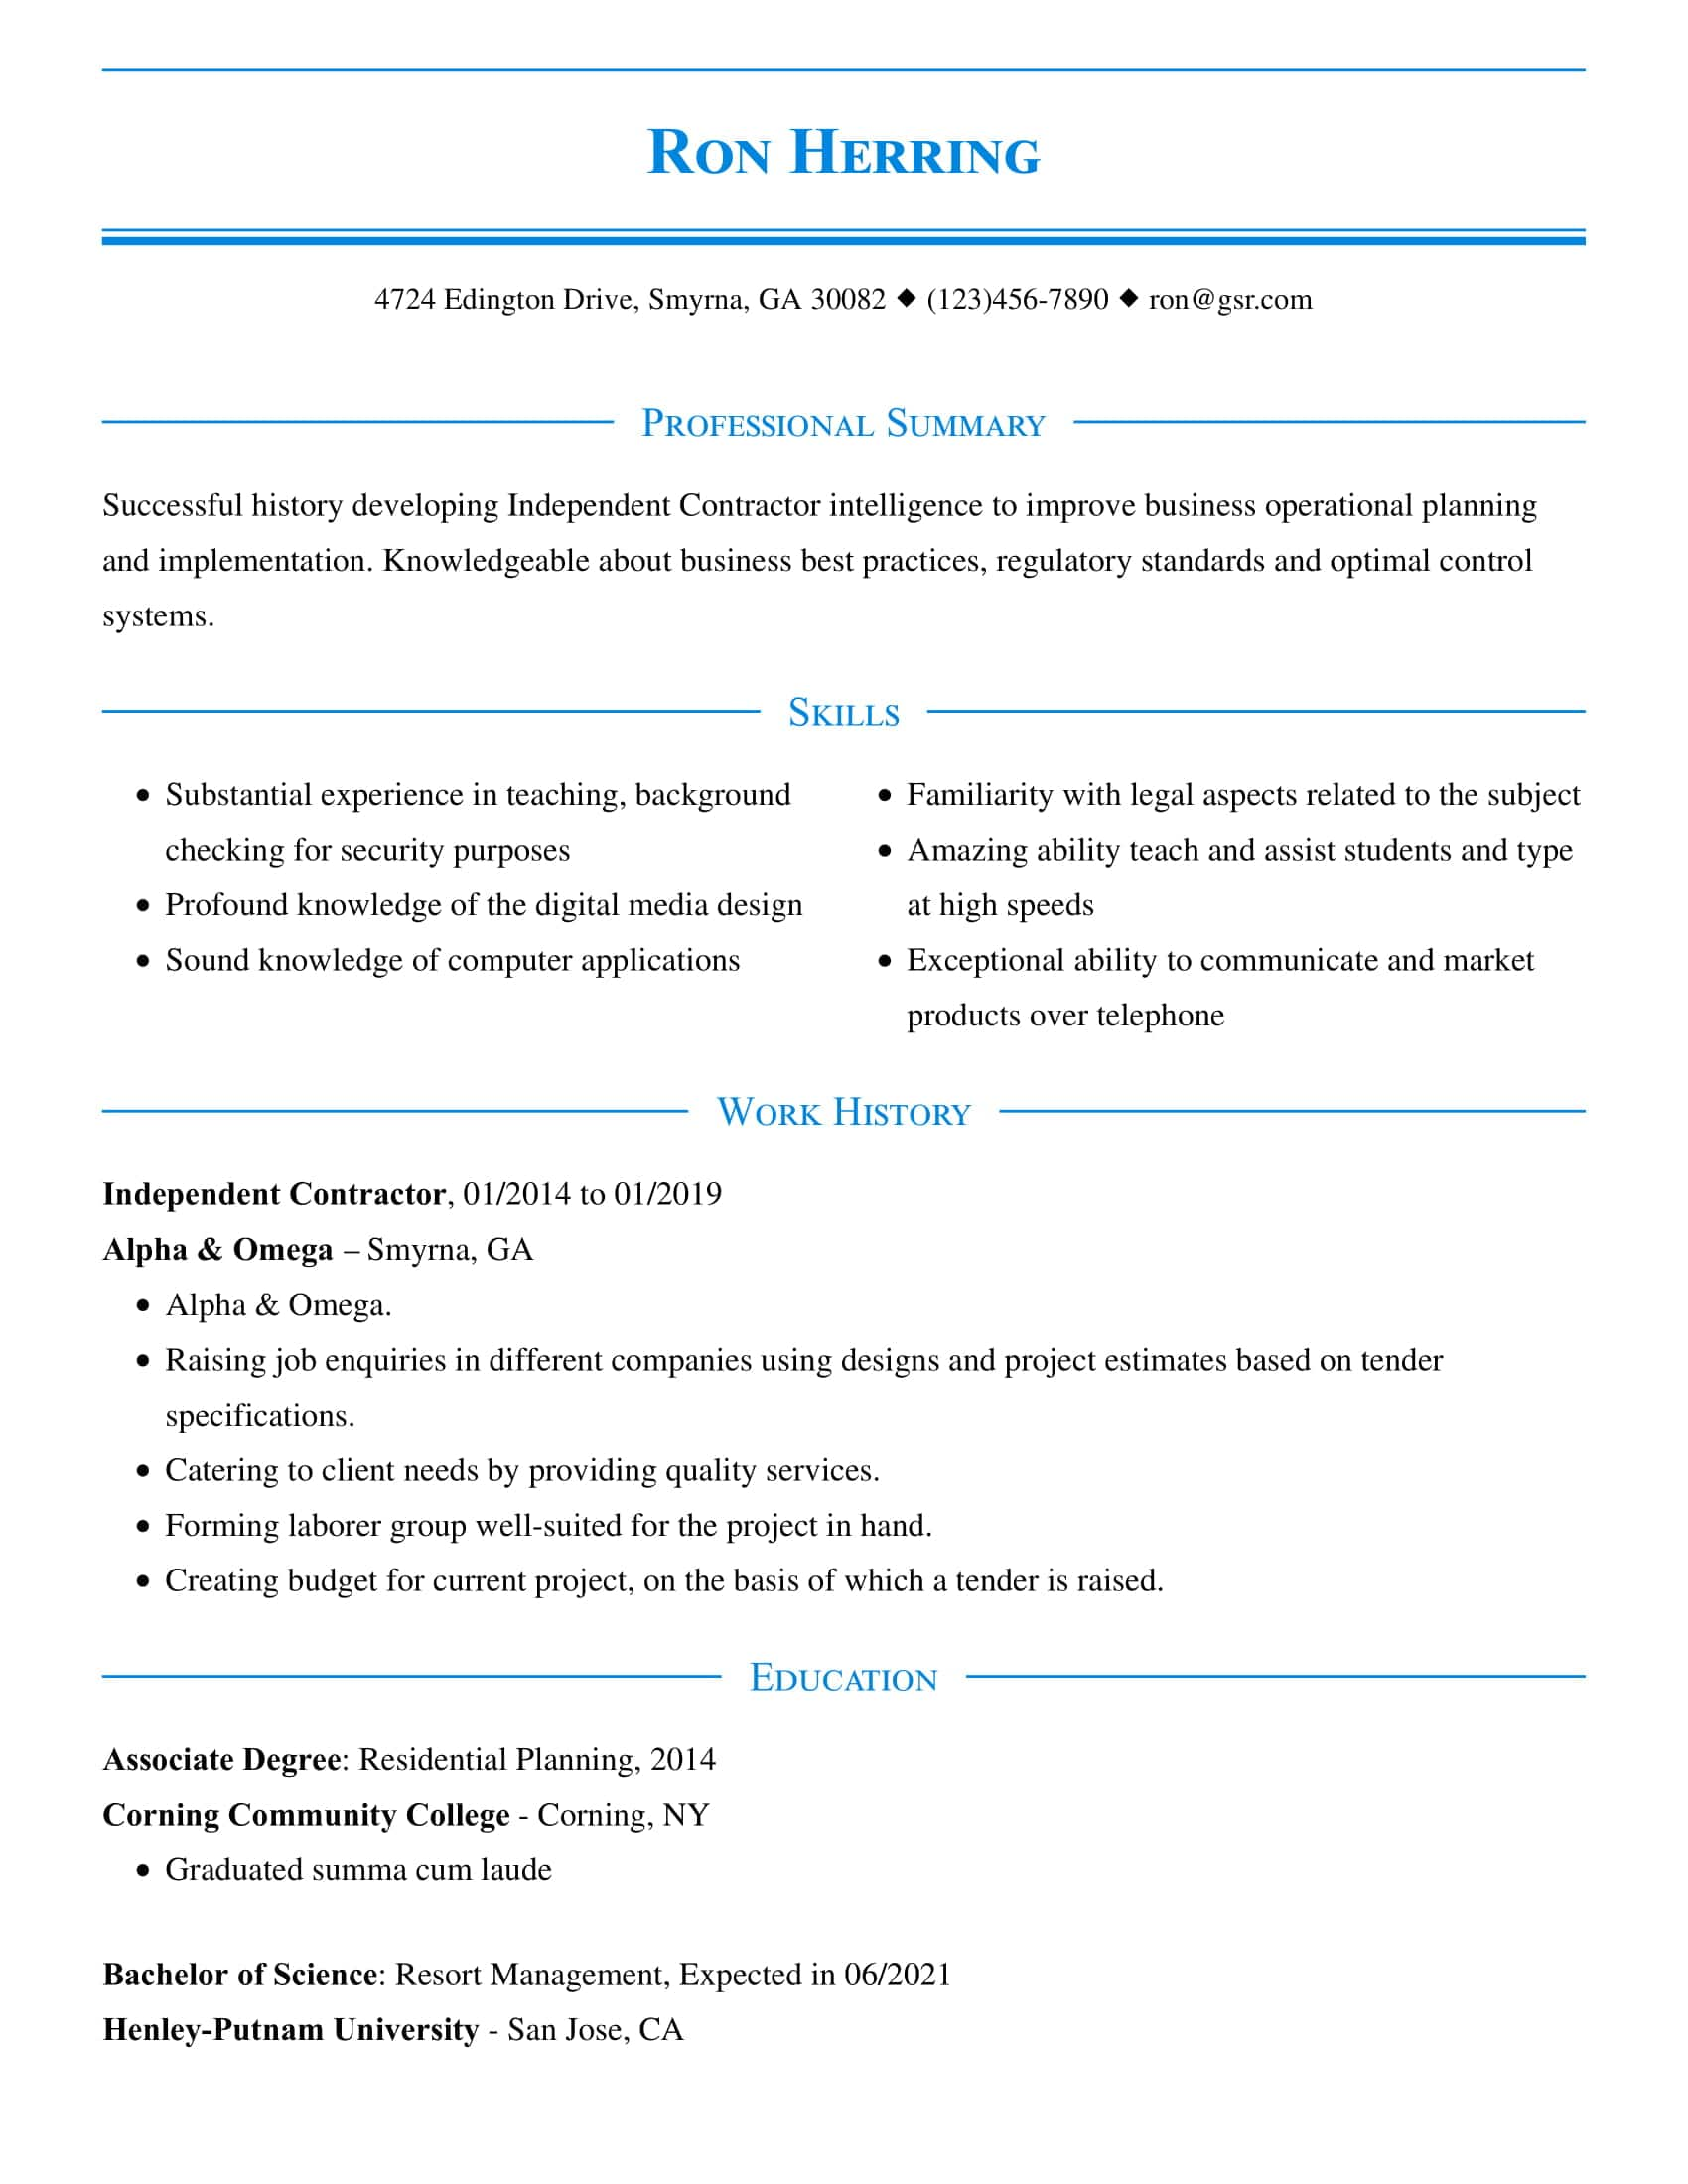 resume templates edit in minutes free two column template word refined blue insurance Resume Free Two Column Resume Template Word